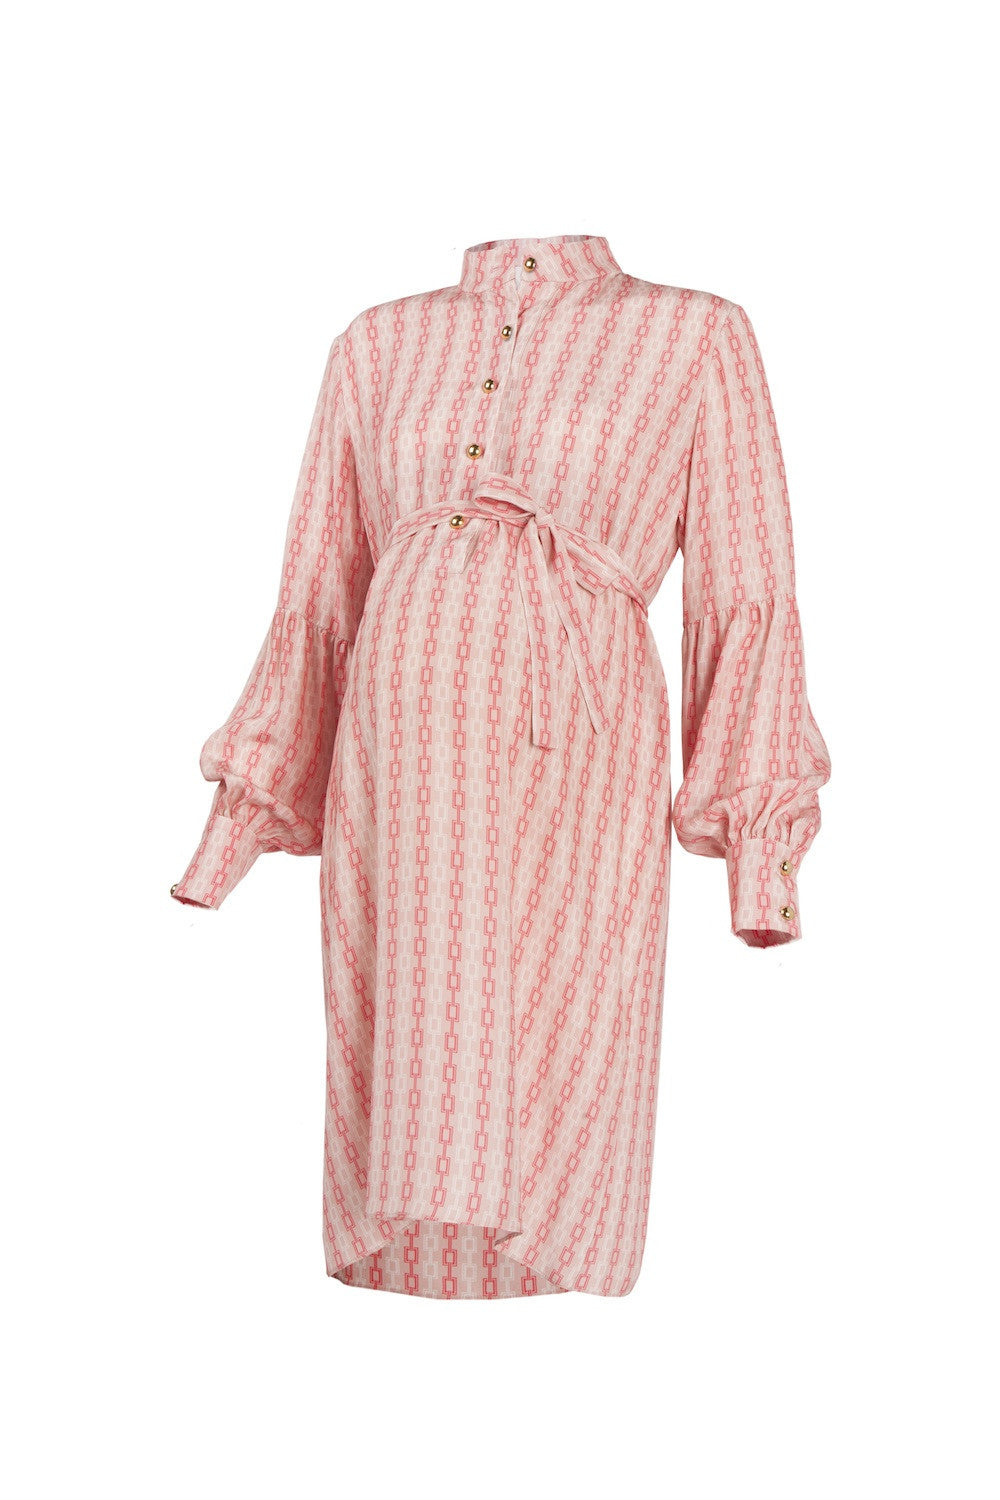 Darcy - Pink - Maternity Outlet - Madderson London